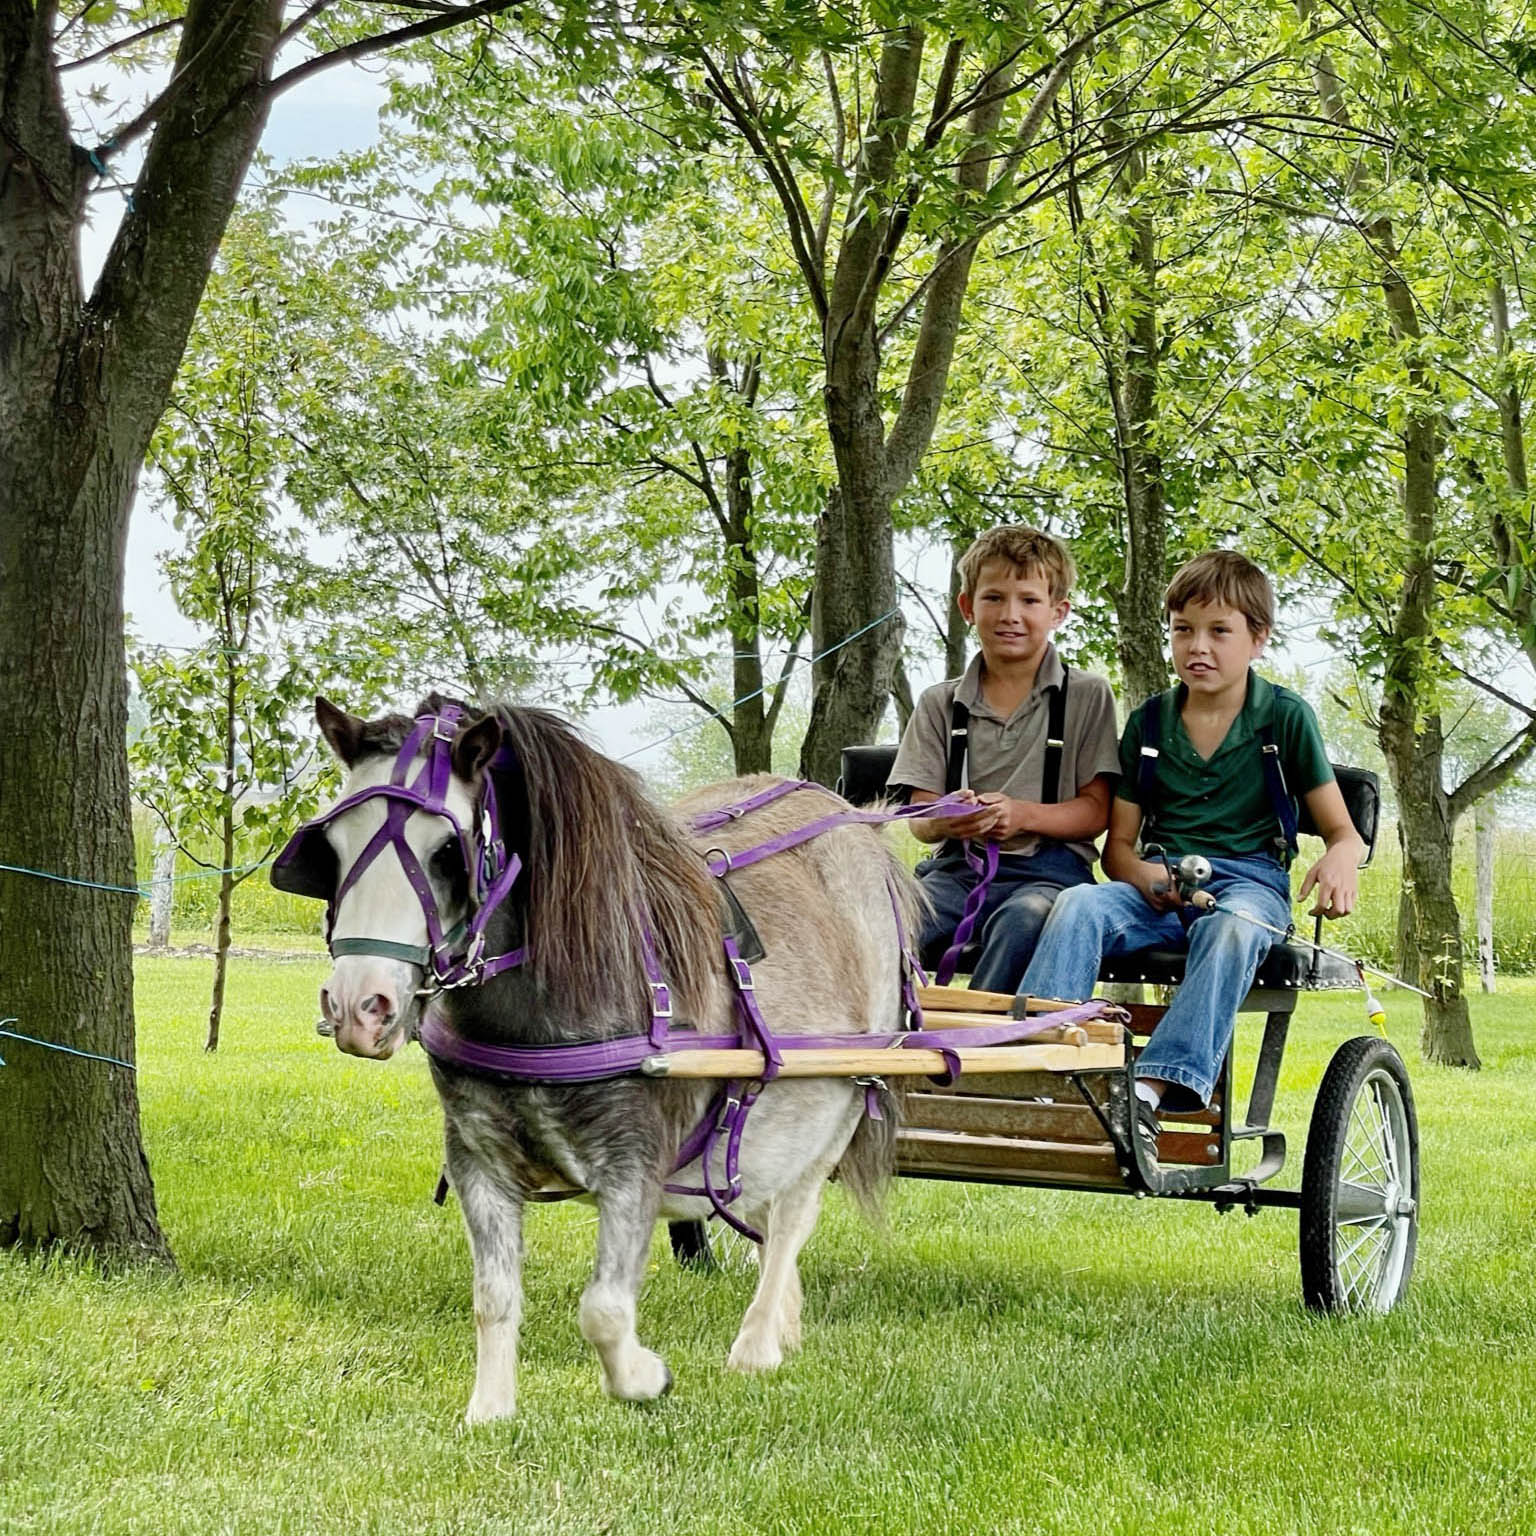 Young Amish boys riding in a horse-drawn buggy